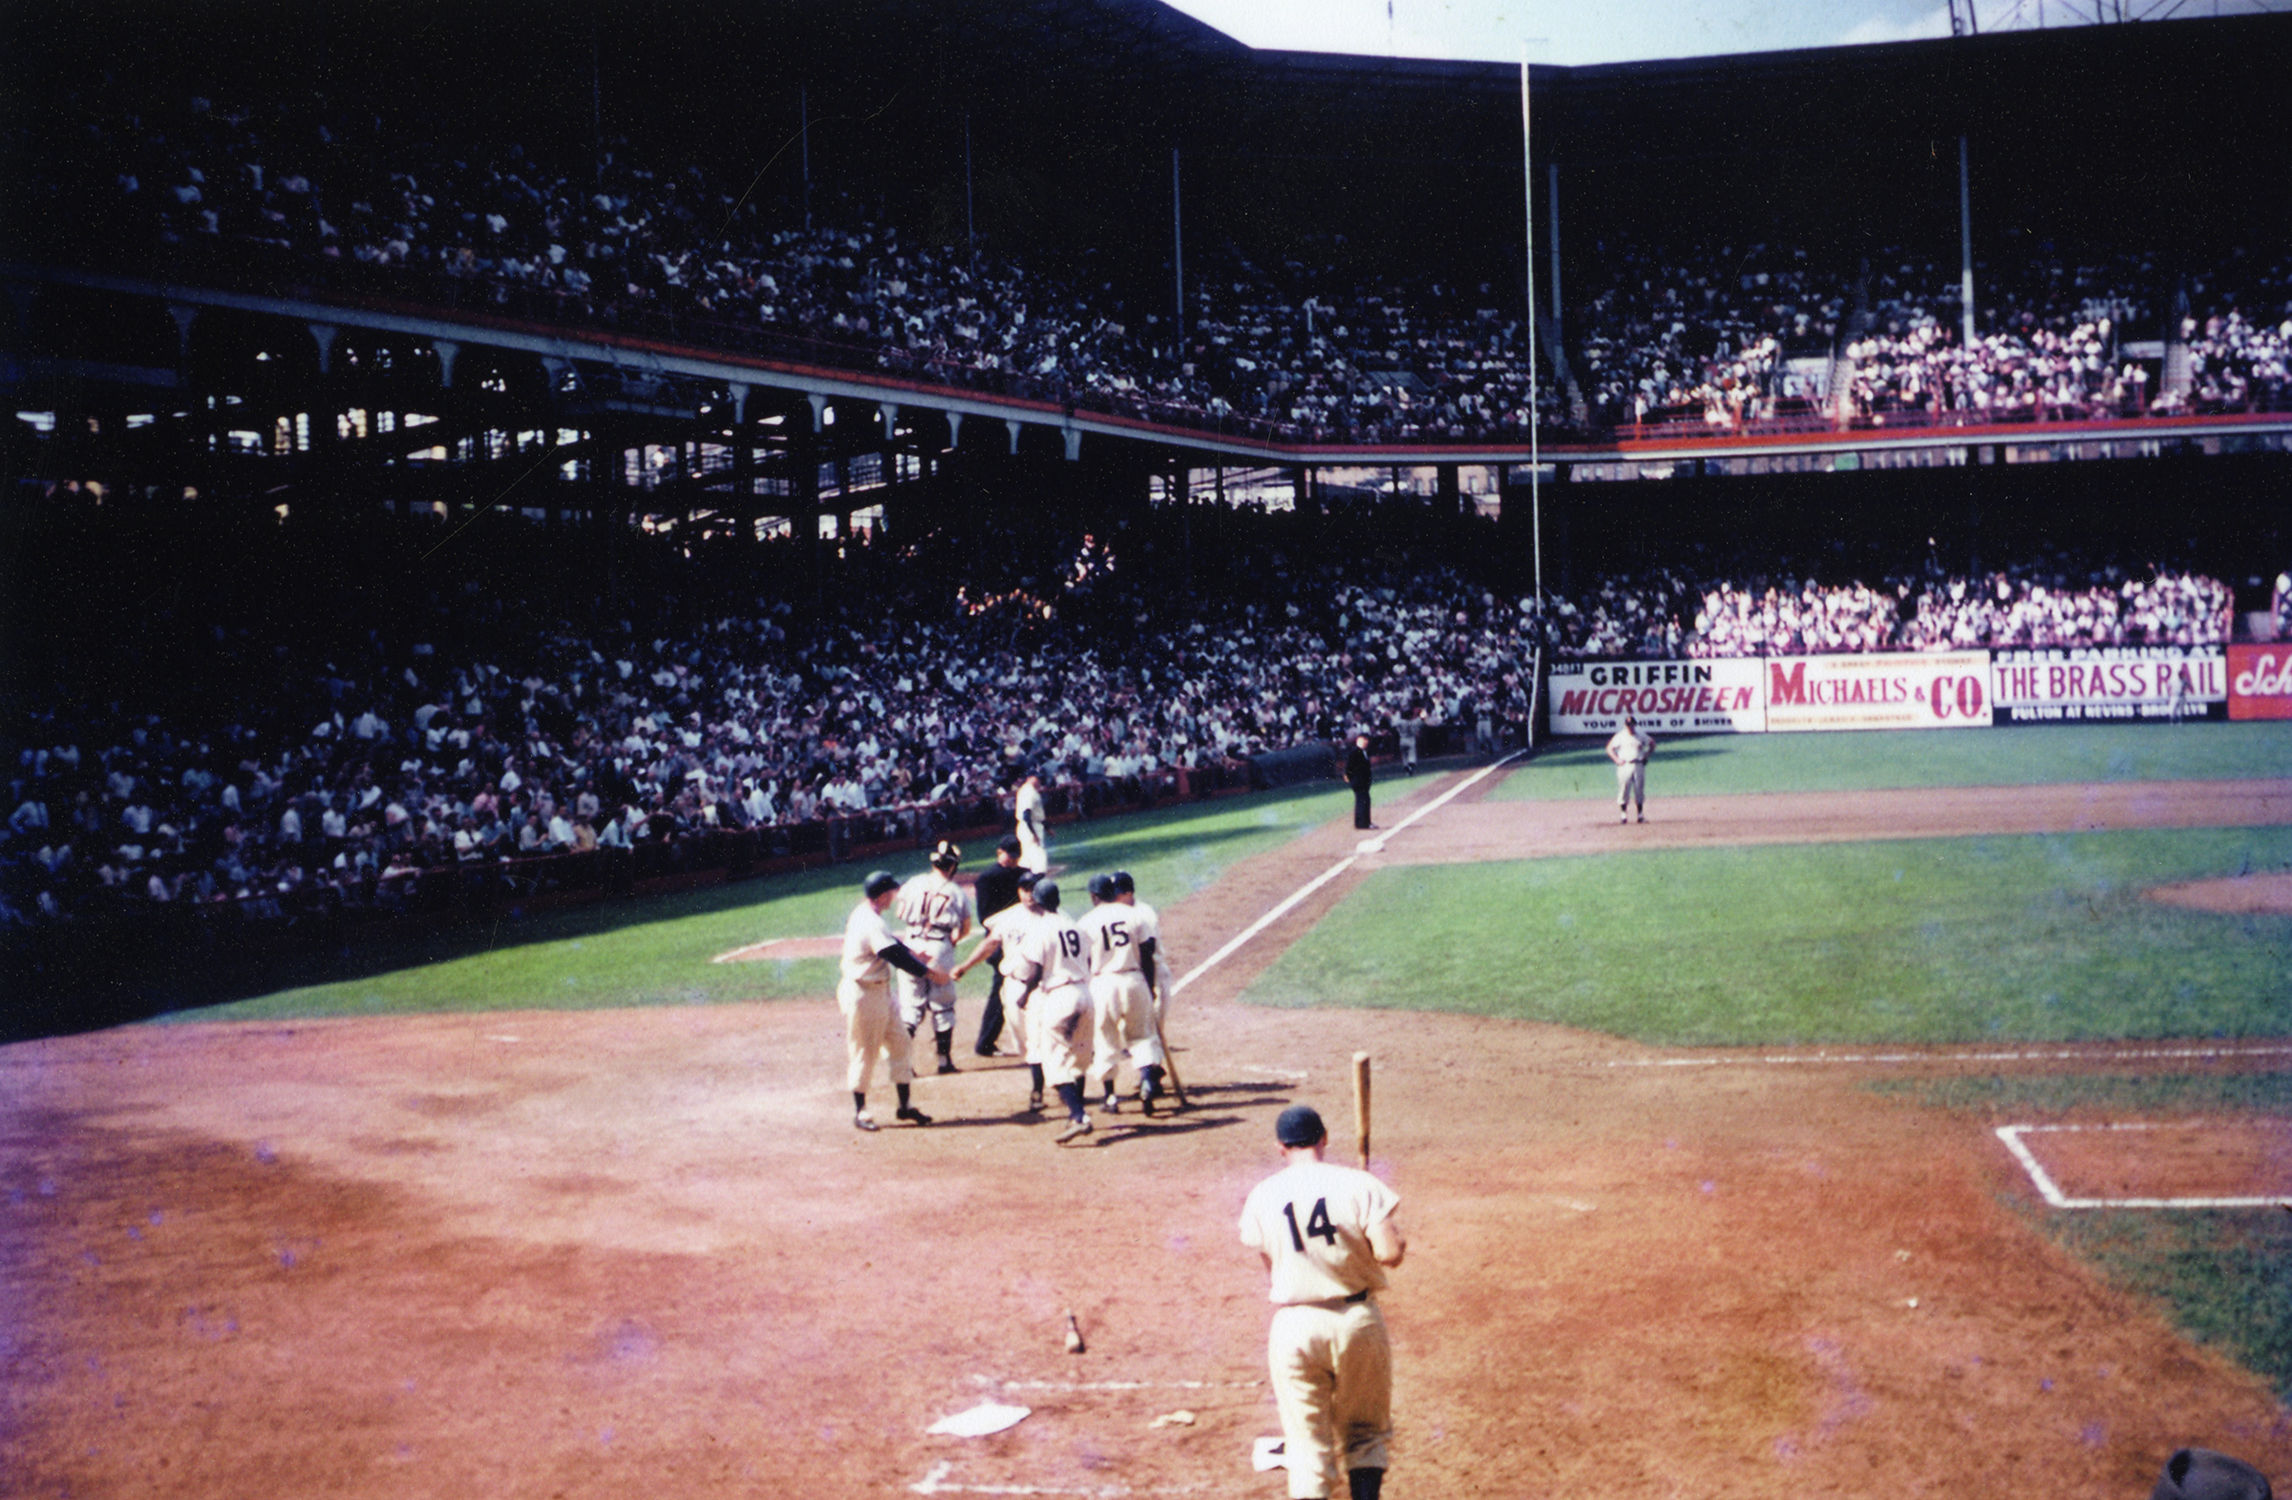 Dodgers win final game at Ebbets Field | Baseball Hall of Fame